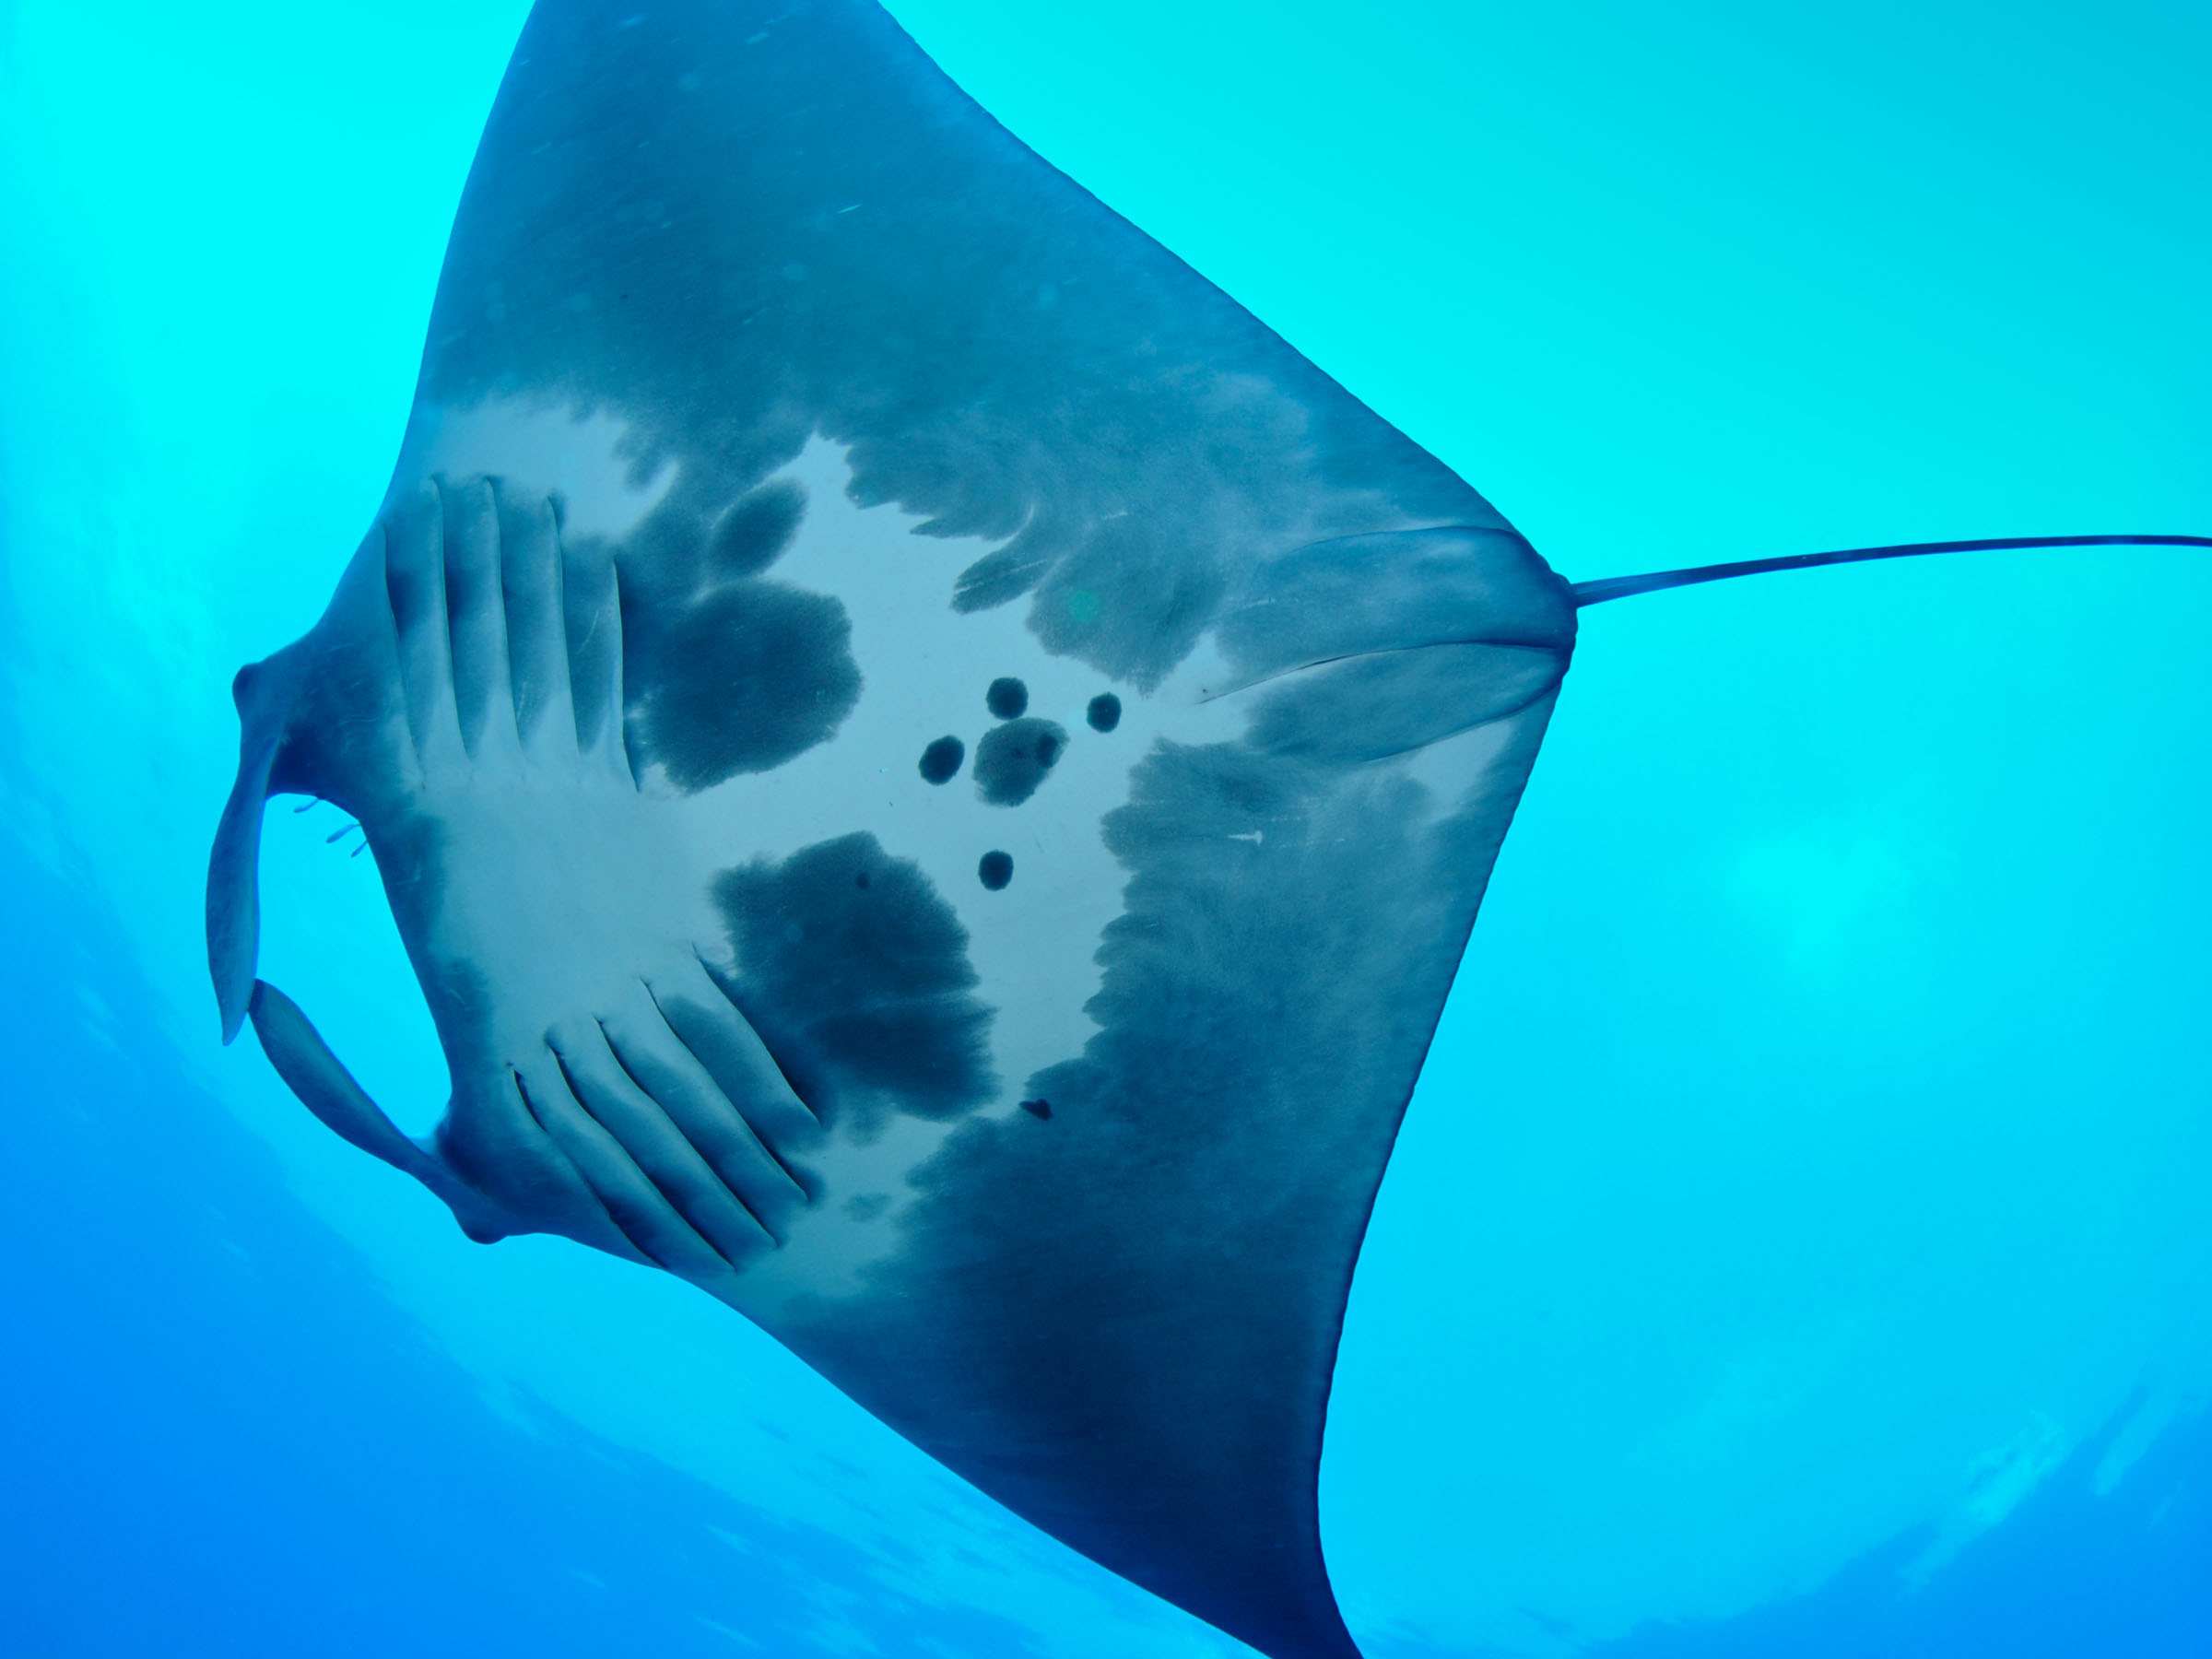 Manta Rays are frequent visitors to Flower Garden Banks National Marine sanctuary in the northwestern Gulf of Mexico. Each individual has a unique spot pattern of black and white on its underside, and over 80 mantas have been identified within the sanctuary. NOAA, G.P. Schmahl